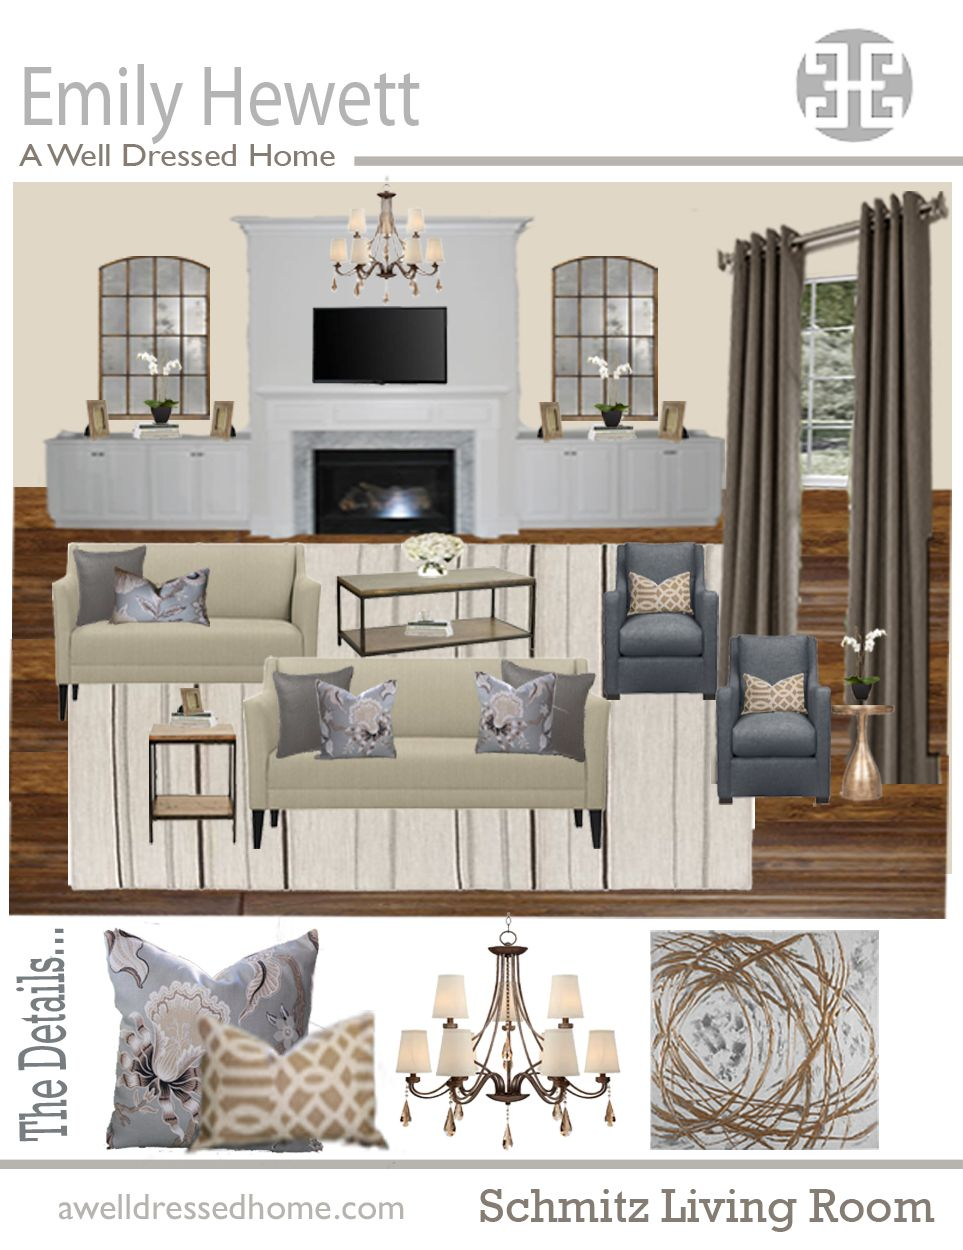 Design A Living Room Online For Free Adorable Schmitz Living Room Online Design Board  For The Home  Pinterest Decorating Inspiration